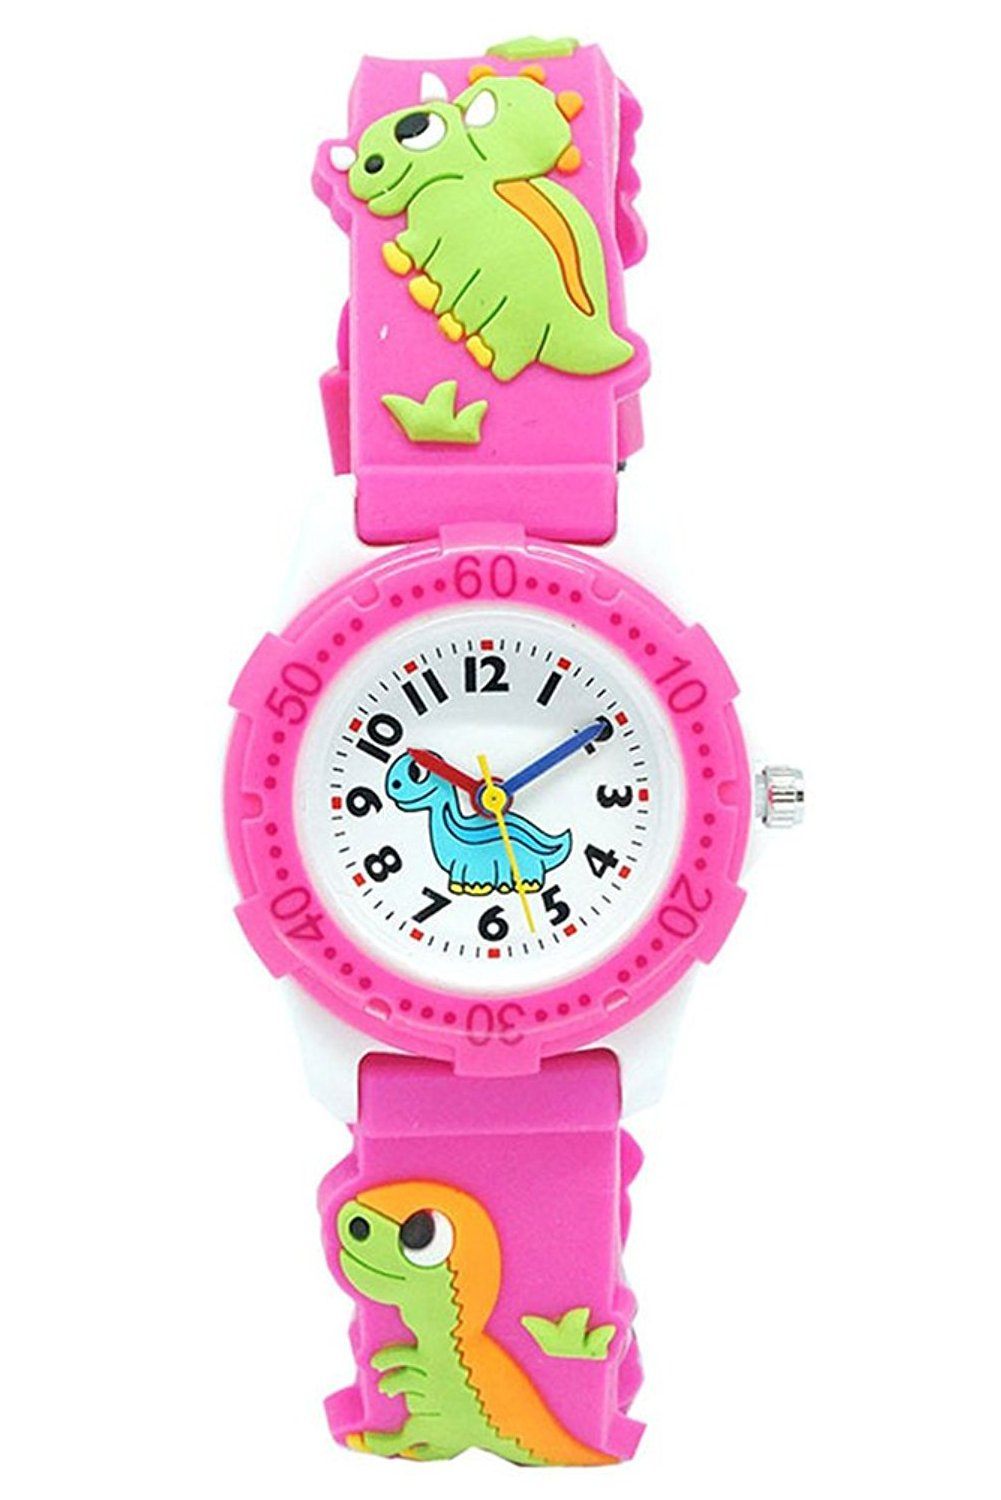 ARPDJK Unisex-Kids Analogue Waterproof Watch, 3d Time Teacher Wrist Cartoon Watch